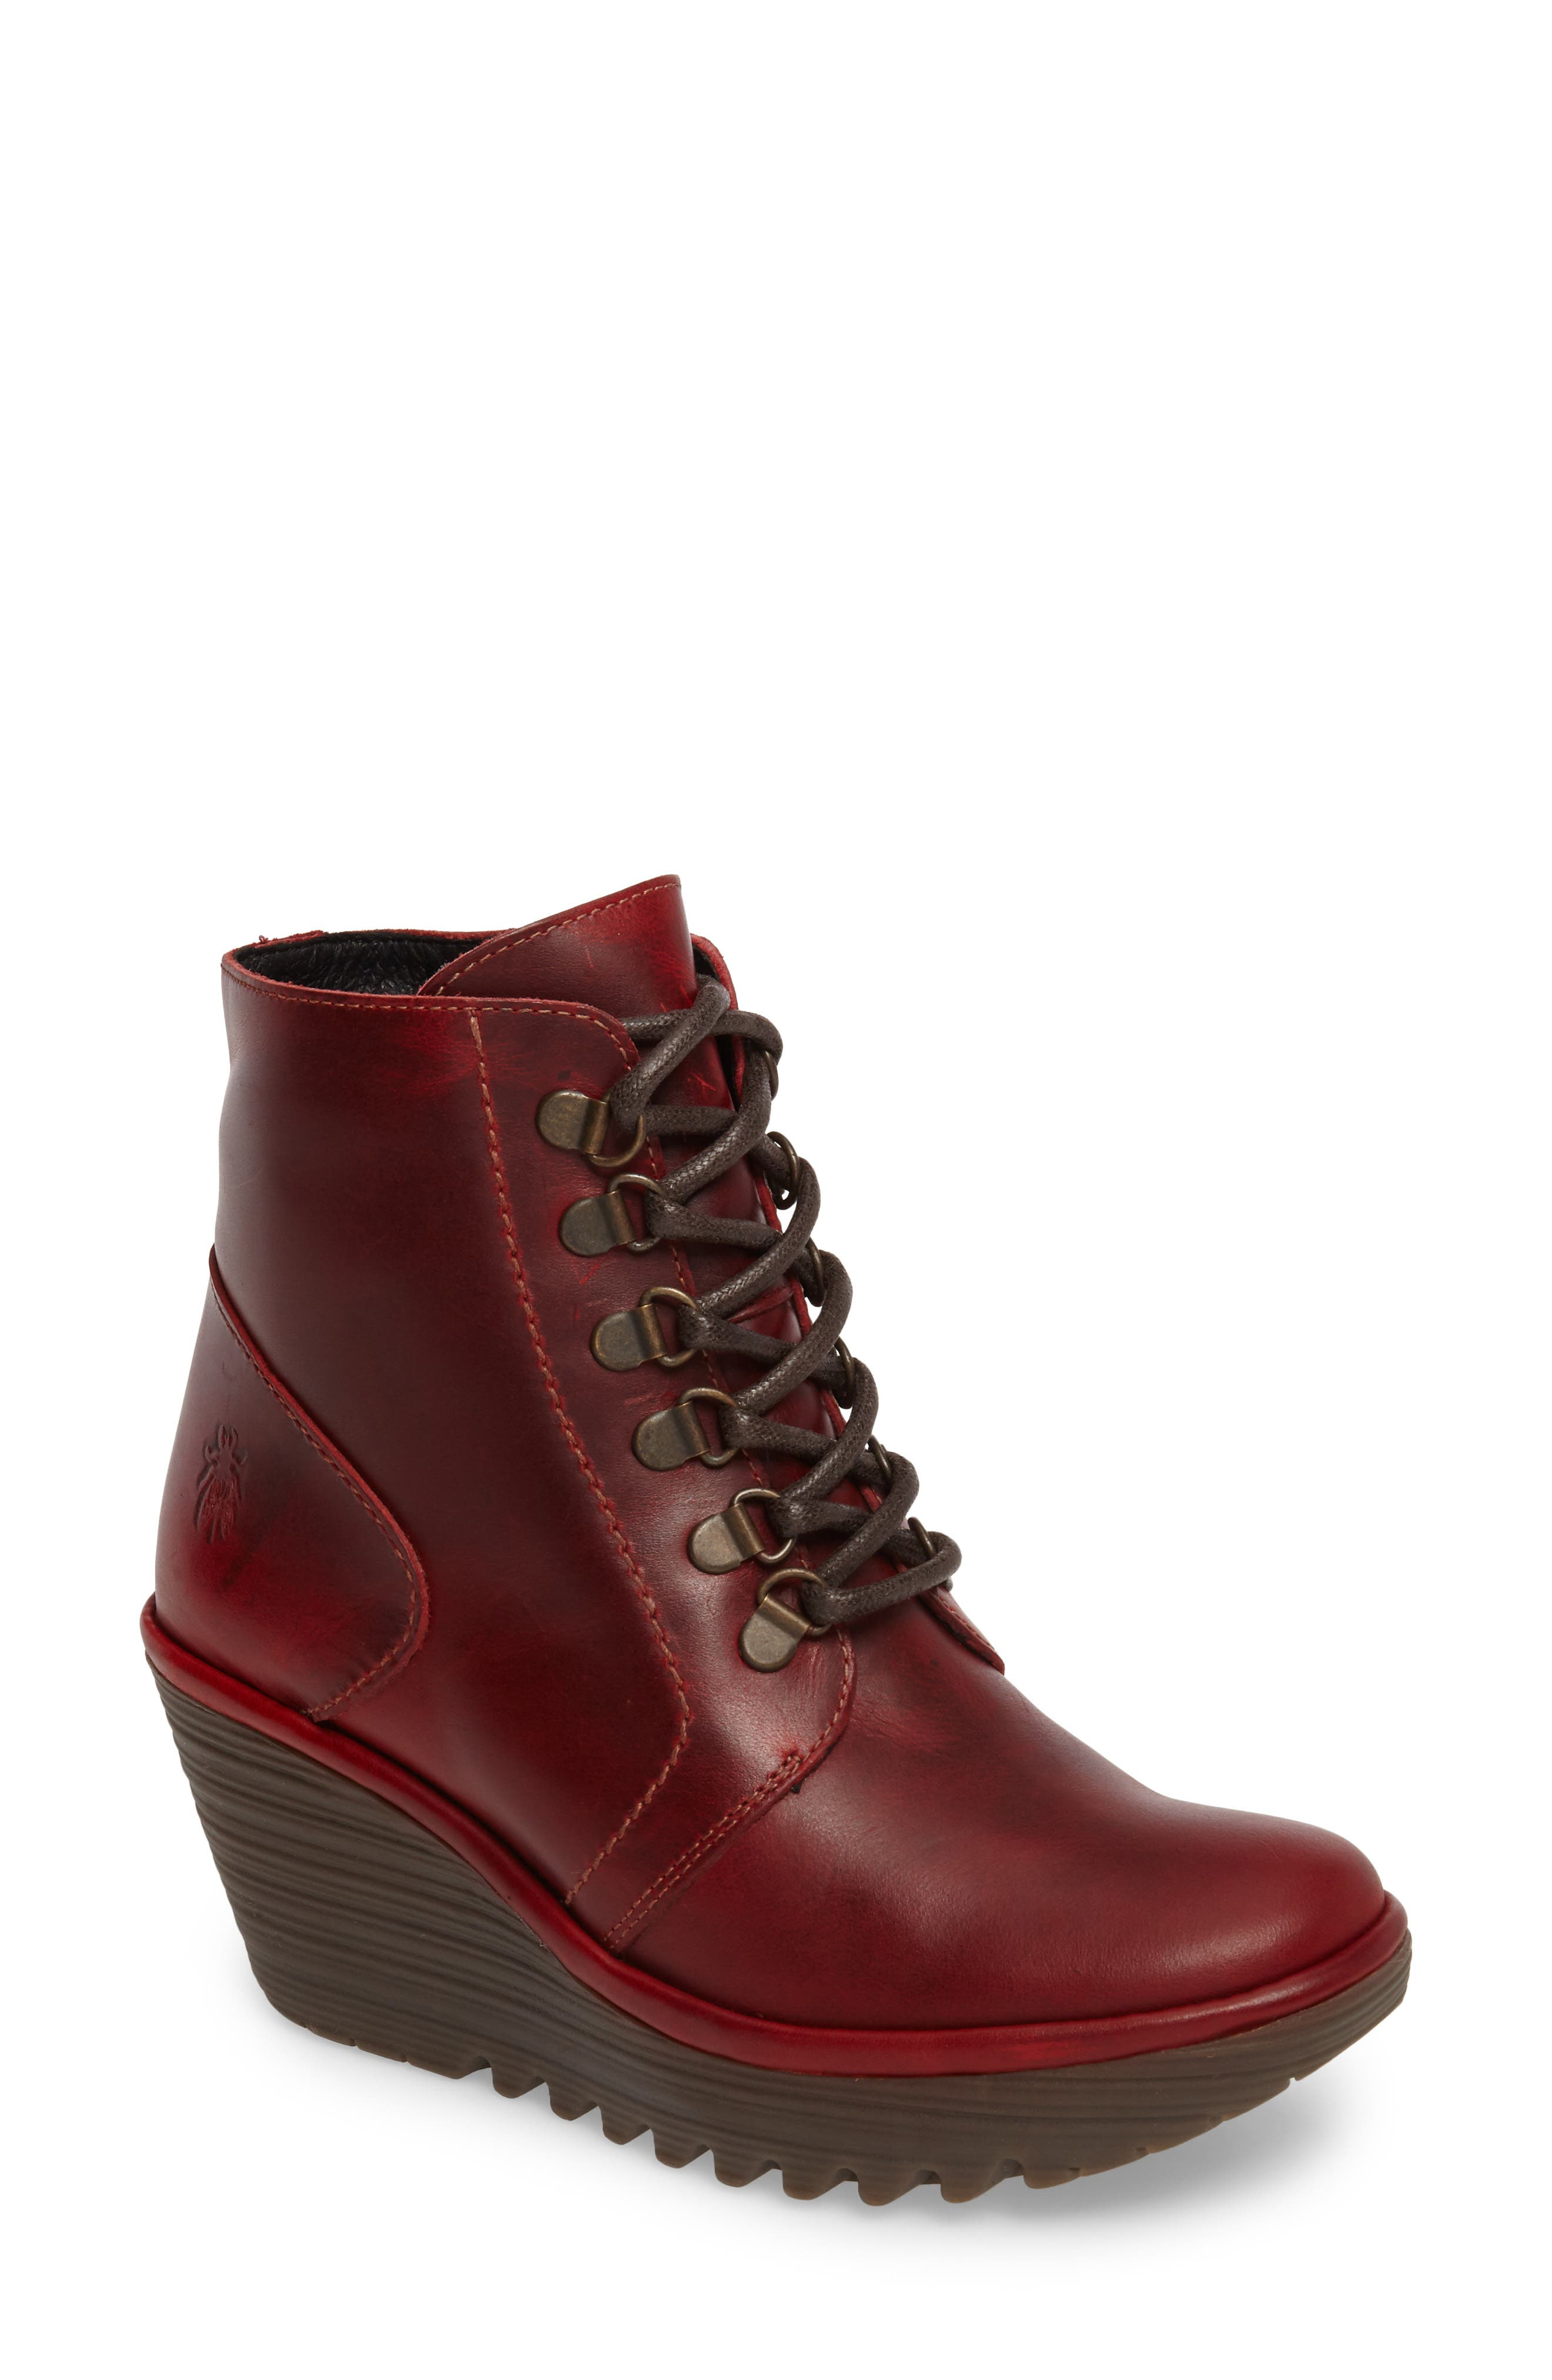 Fly London Yarn Lace-Up Wedge Boot (Women)